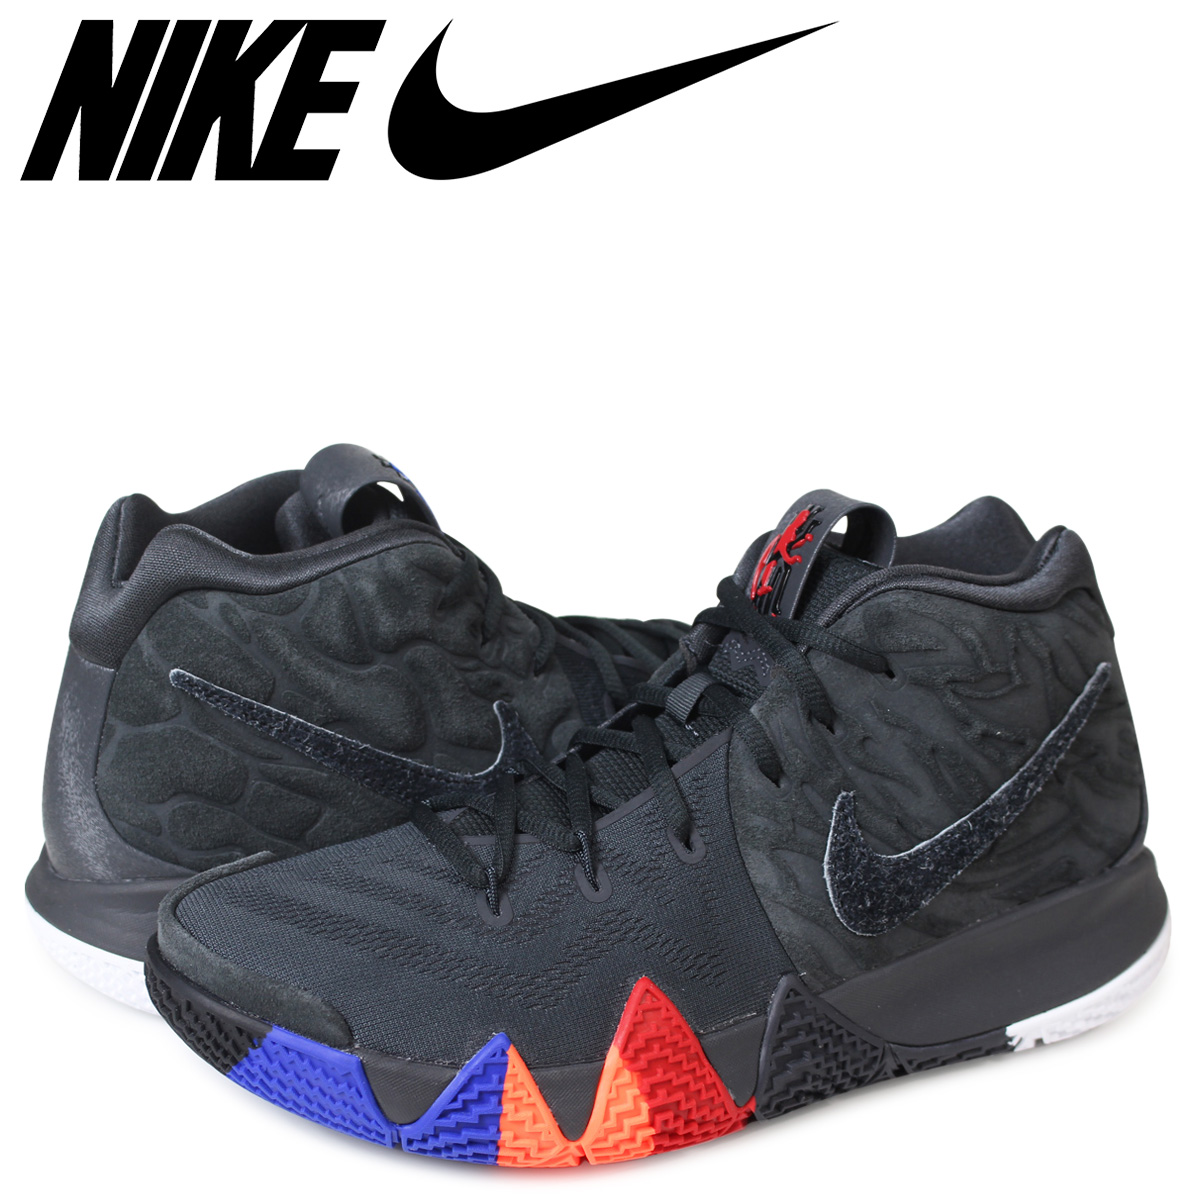 070fcc61a926 ALLSPORTS  NIKE KYRIE 4 EP Nike chi Lee 4 sneakers men 943